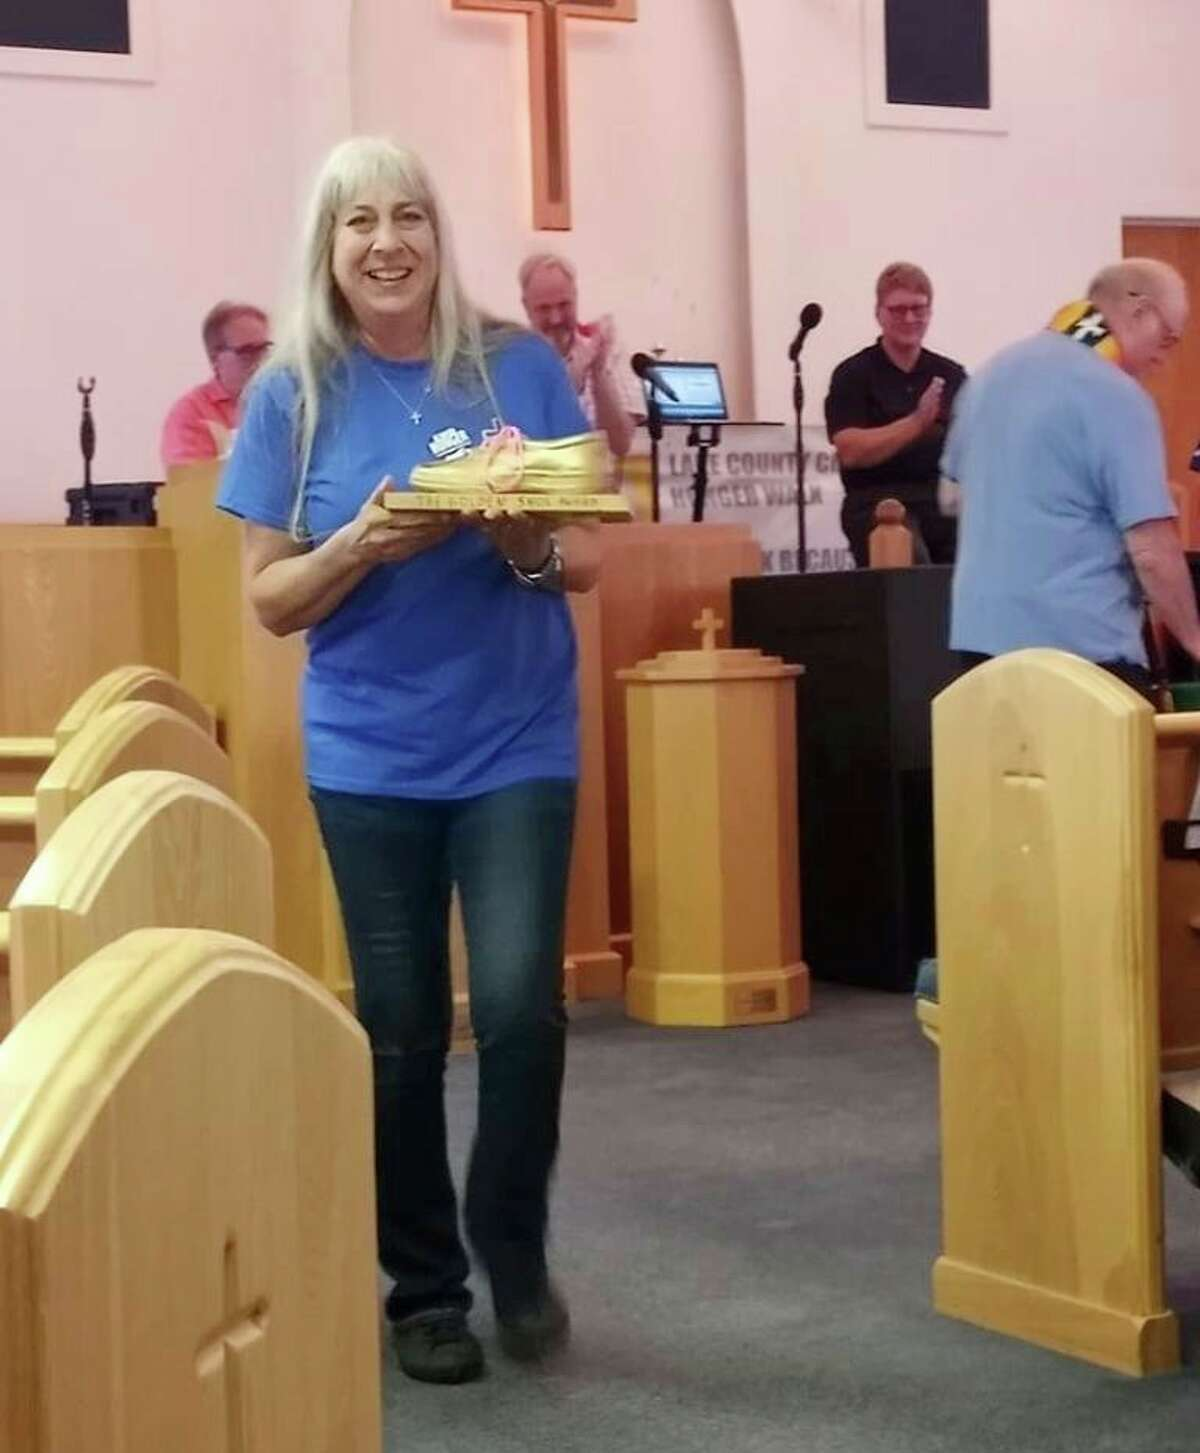 Lynne Mills, of Bread of Life Food Pantry, accepted the Golden Shoe Award. (Star photo/Shanna Avery)